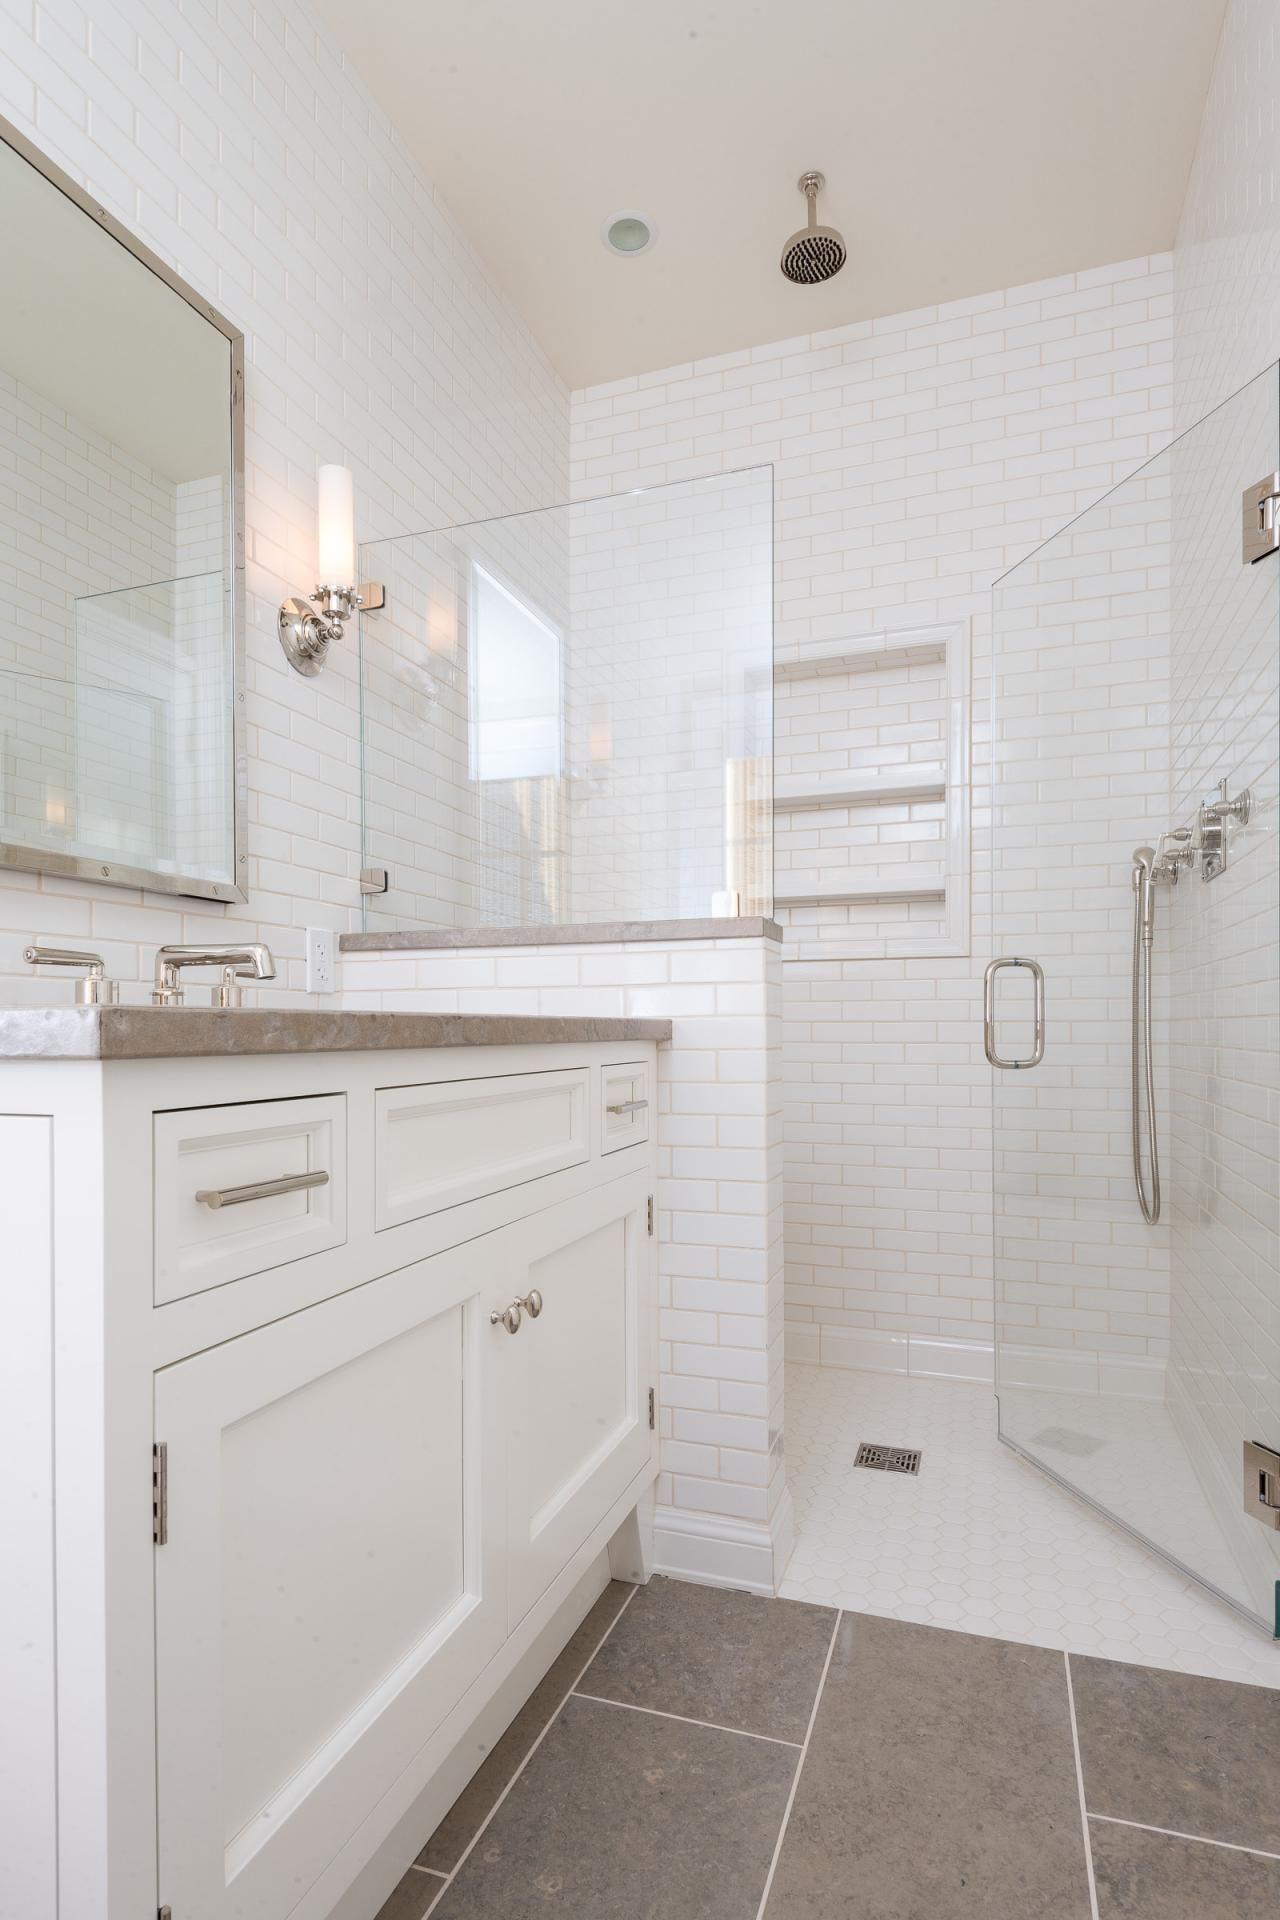 This Basic Bathroom Style Becomes More Streamlined And